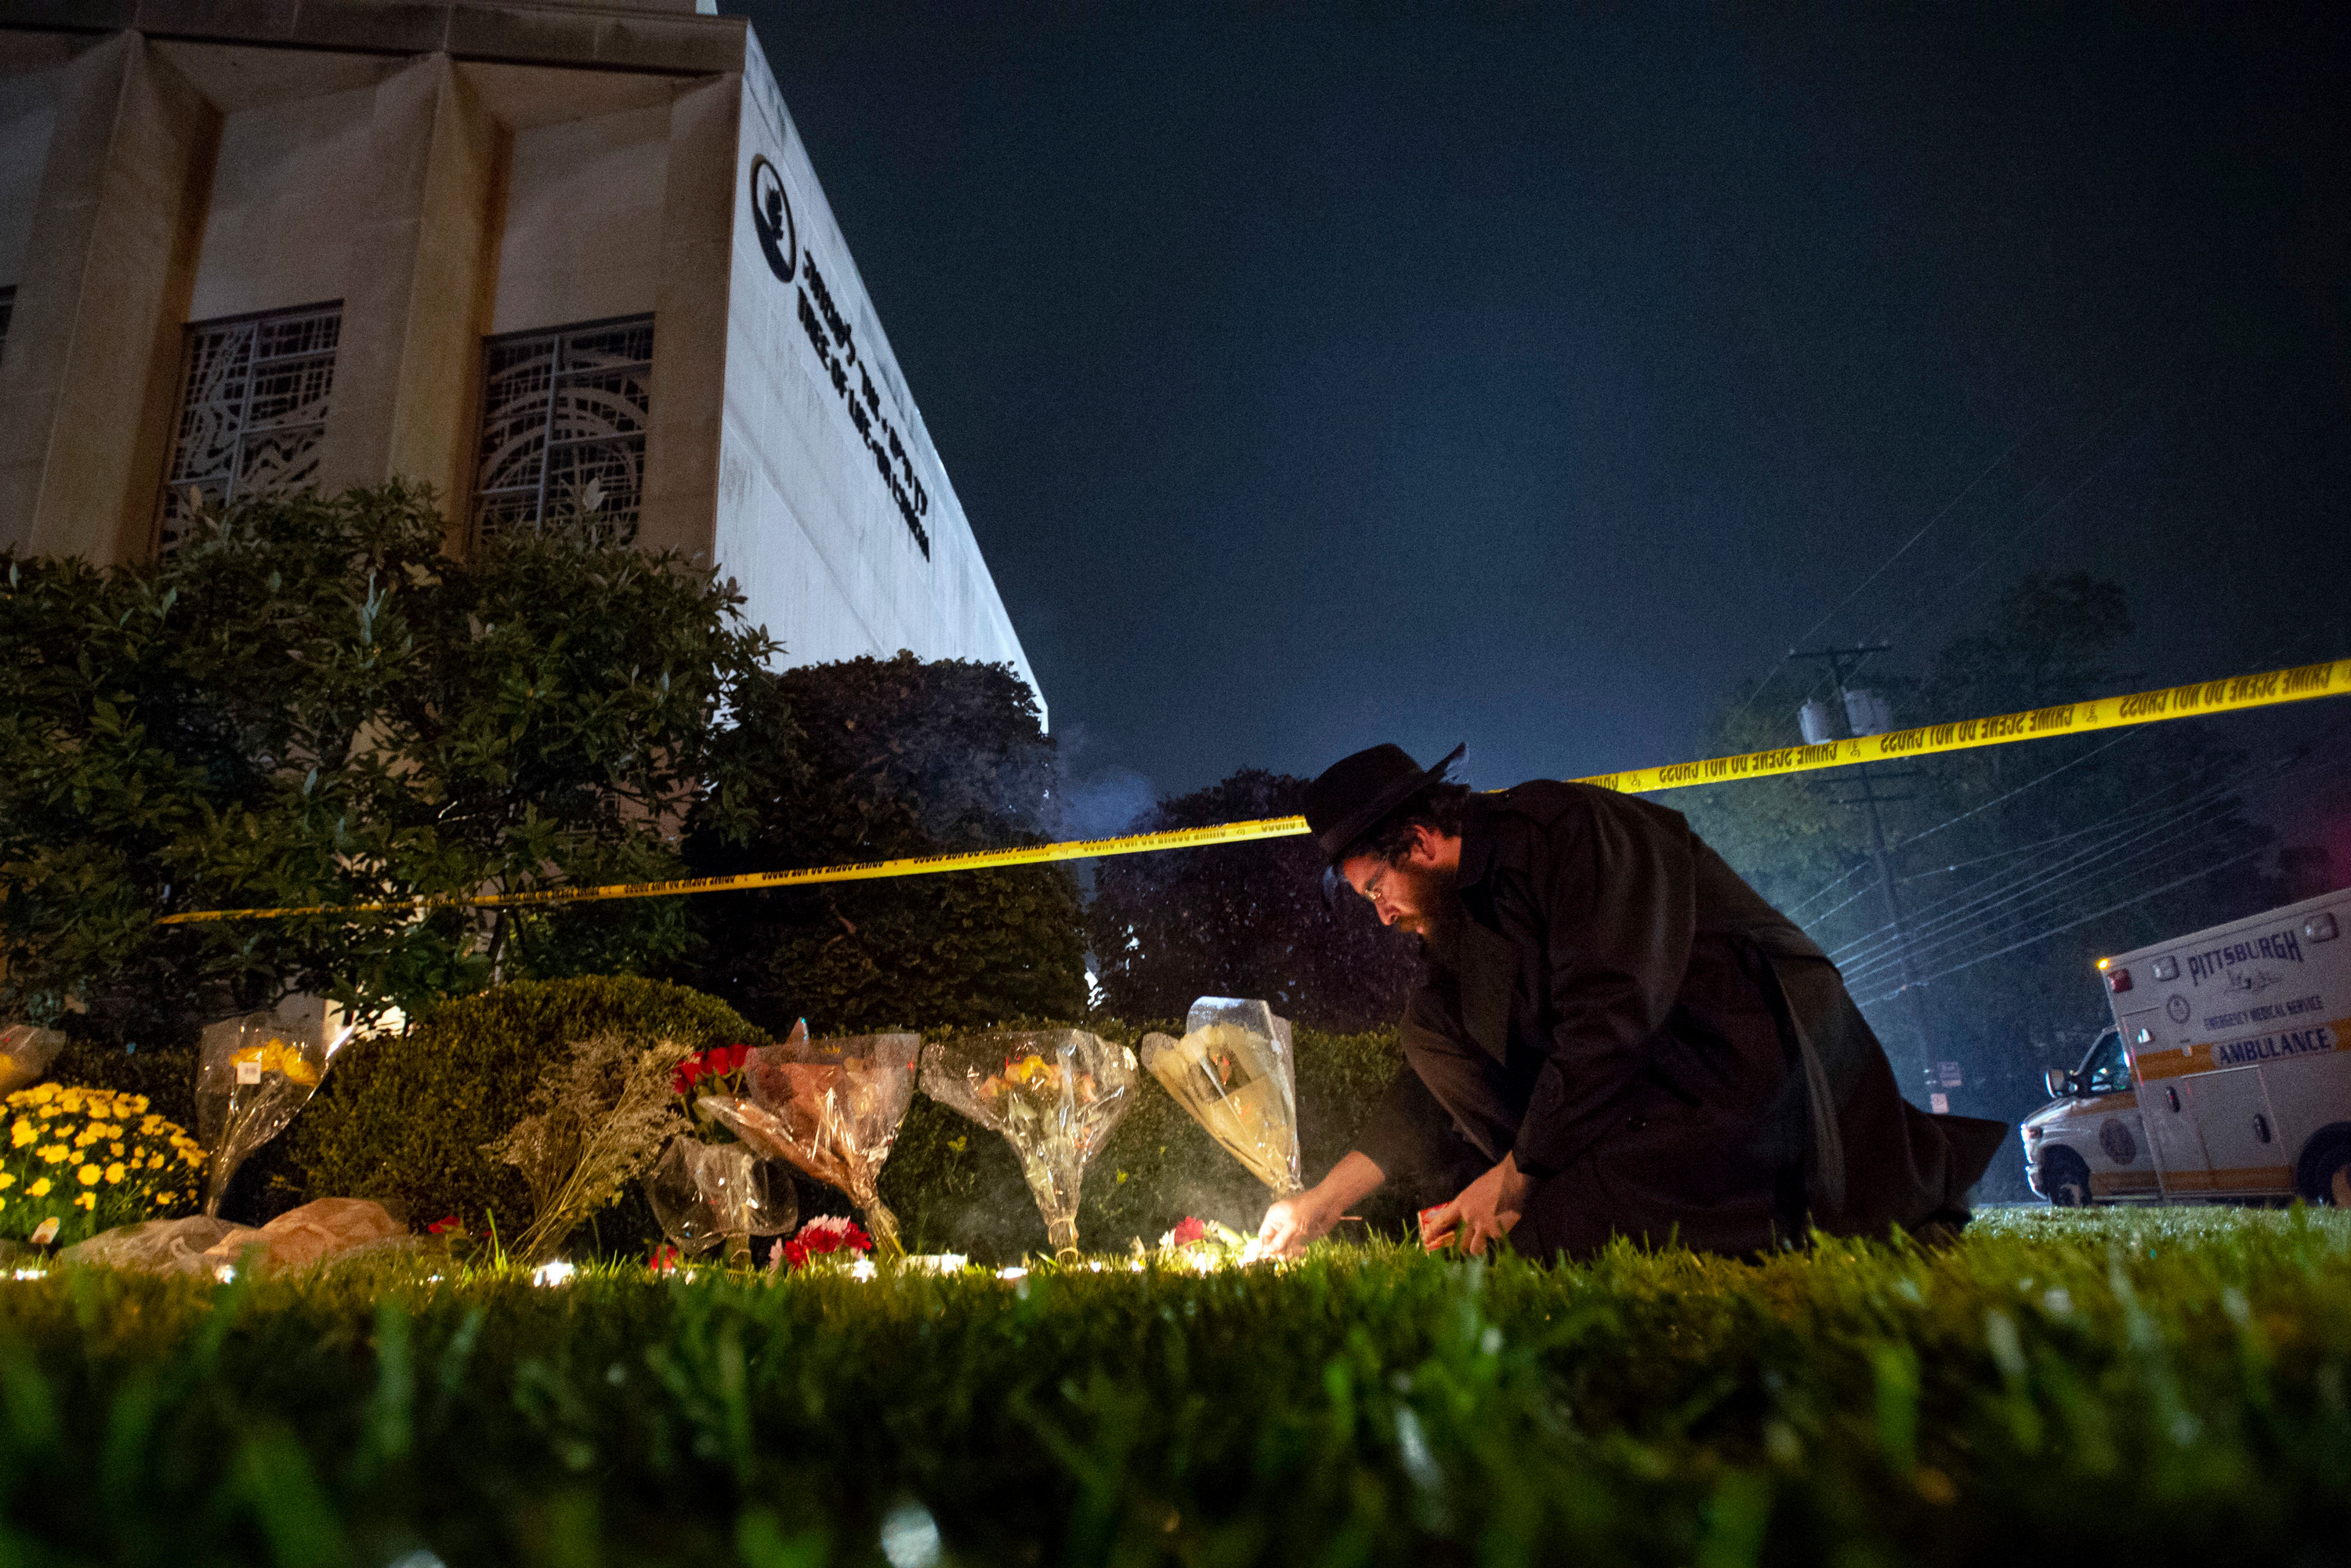 In this Oct. 27, 2018 photo, Rabbi Eli Wilansky lights a candle after a mass shooting at Tree of Life  Synagogue in Pittsburgh's Squirrel Hill neighborhood. Robert Bowers, the suspect in Saturday's mass shooting, expressed hatred of Jews during the rampage and told officers afterward that Jews were committing genocide and he wanted them all to die, according to charging documents made public Sunday. (Steph Chambers/Pittsburgh Post-Gazette via AP)